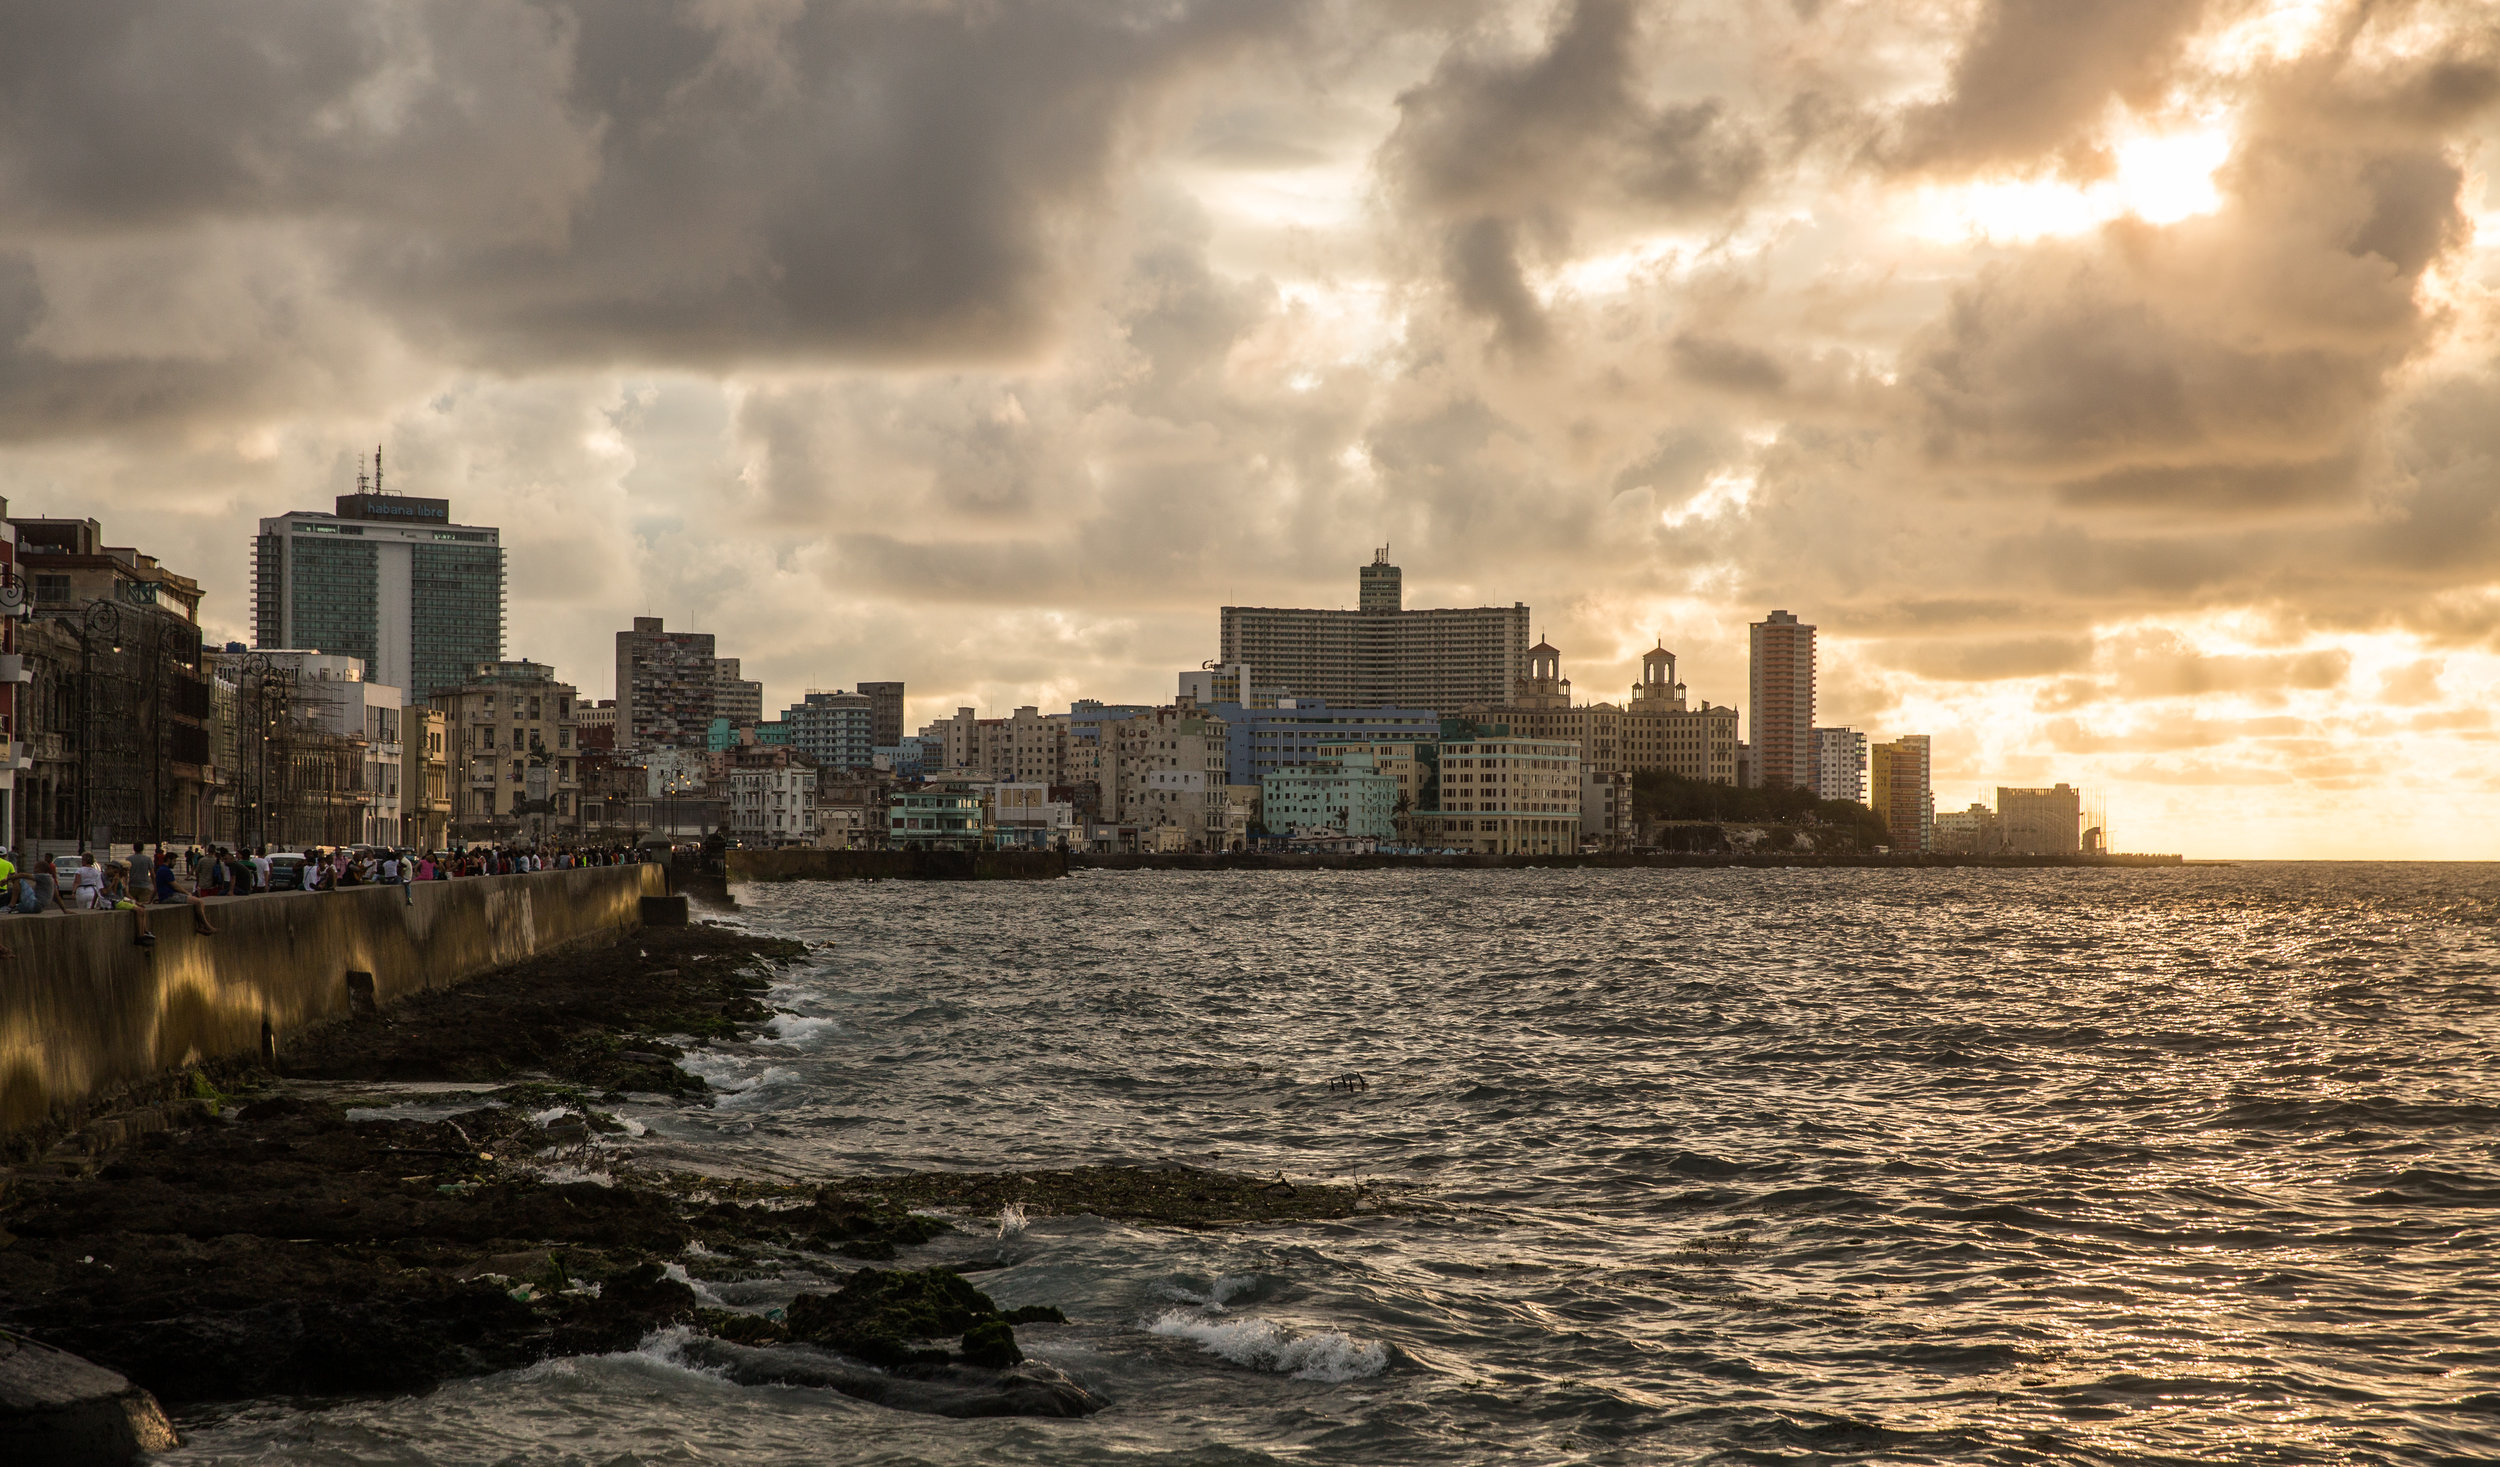 The Malecón is the most popular spot in Cuba. Crowds of people hugged the sea wall for miles to watch the sunset on a warm Sunday evening.